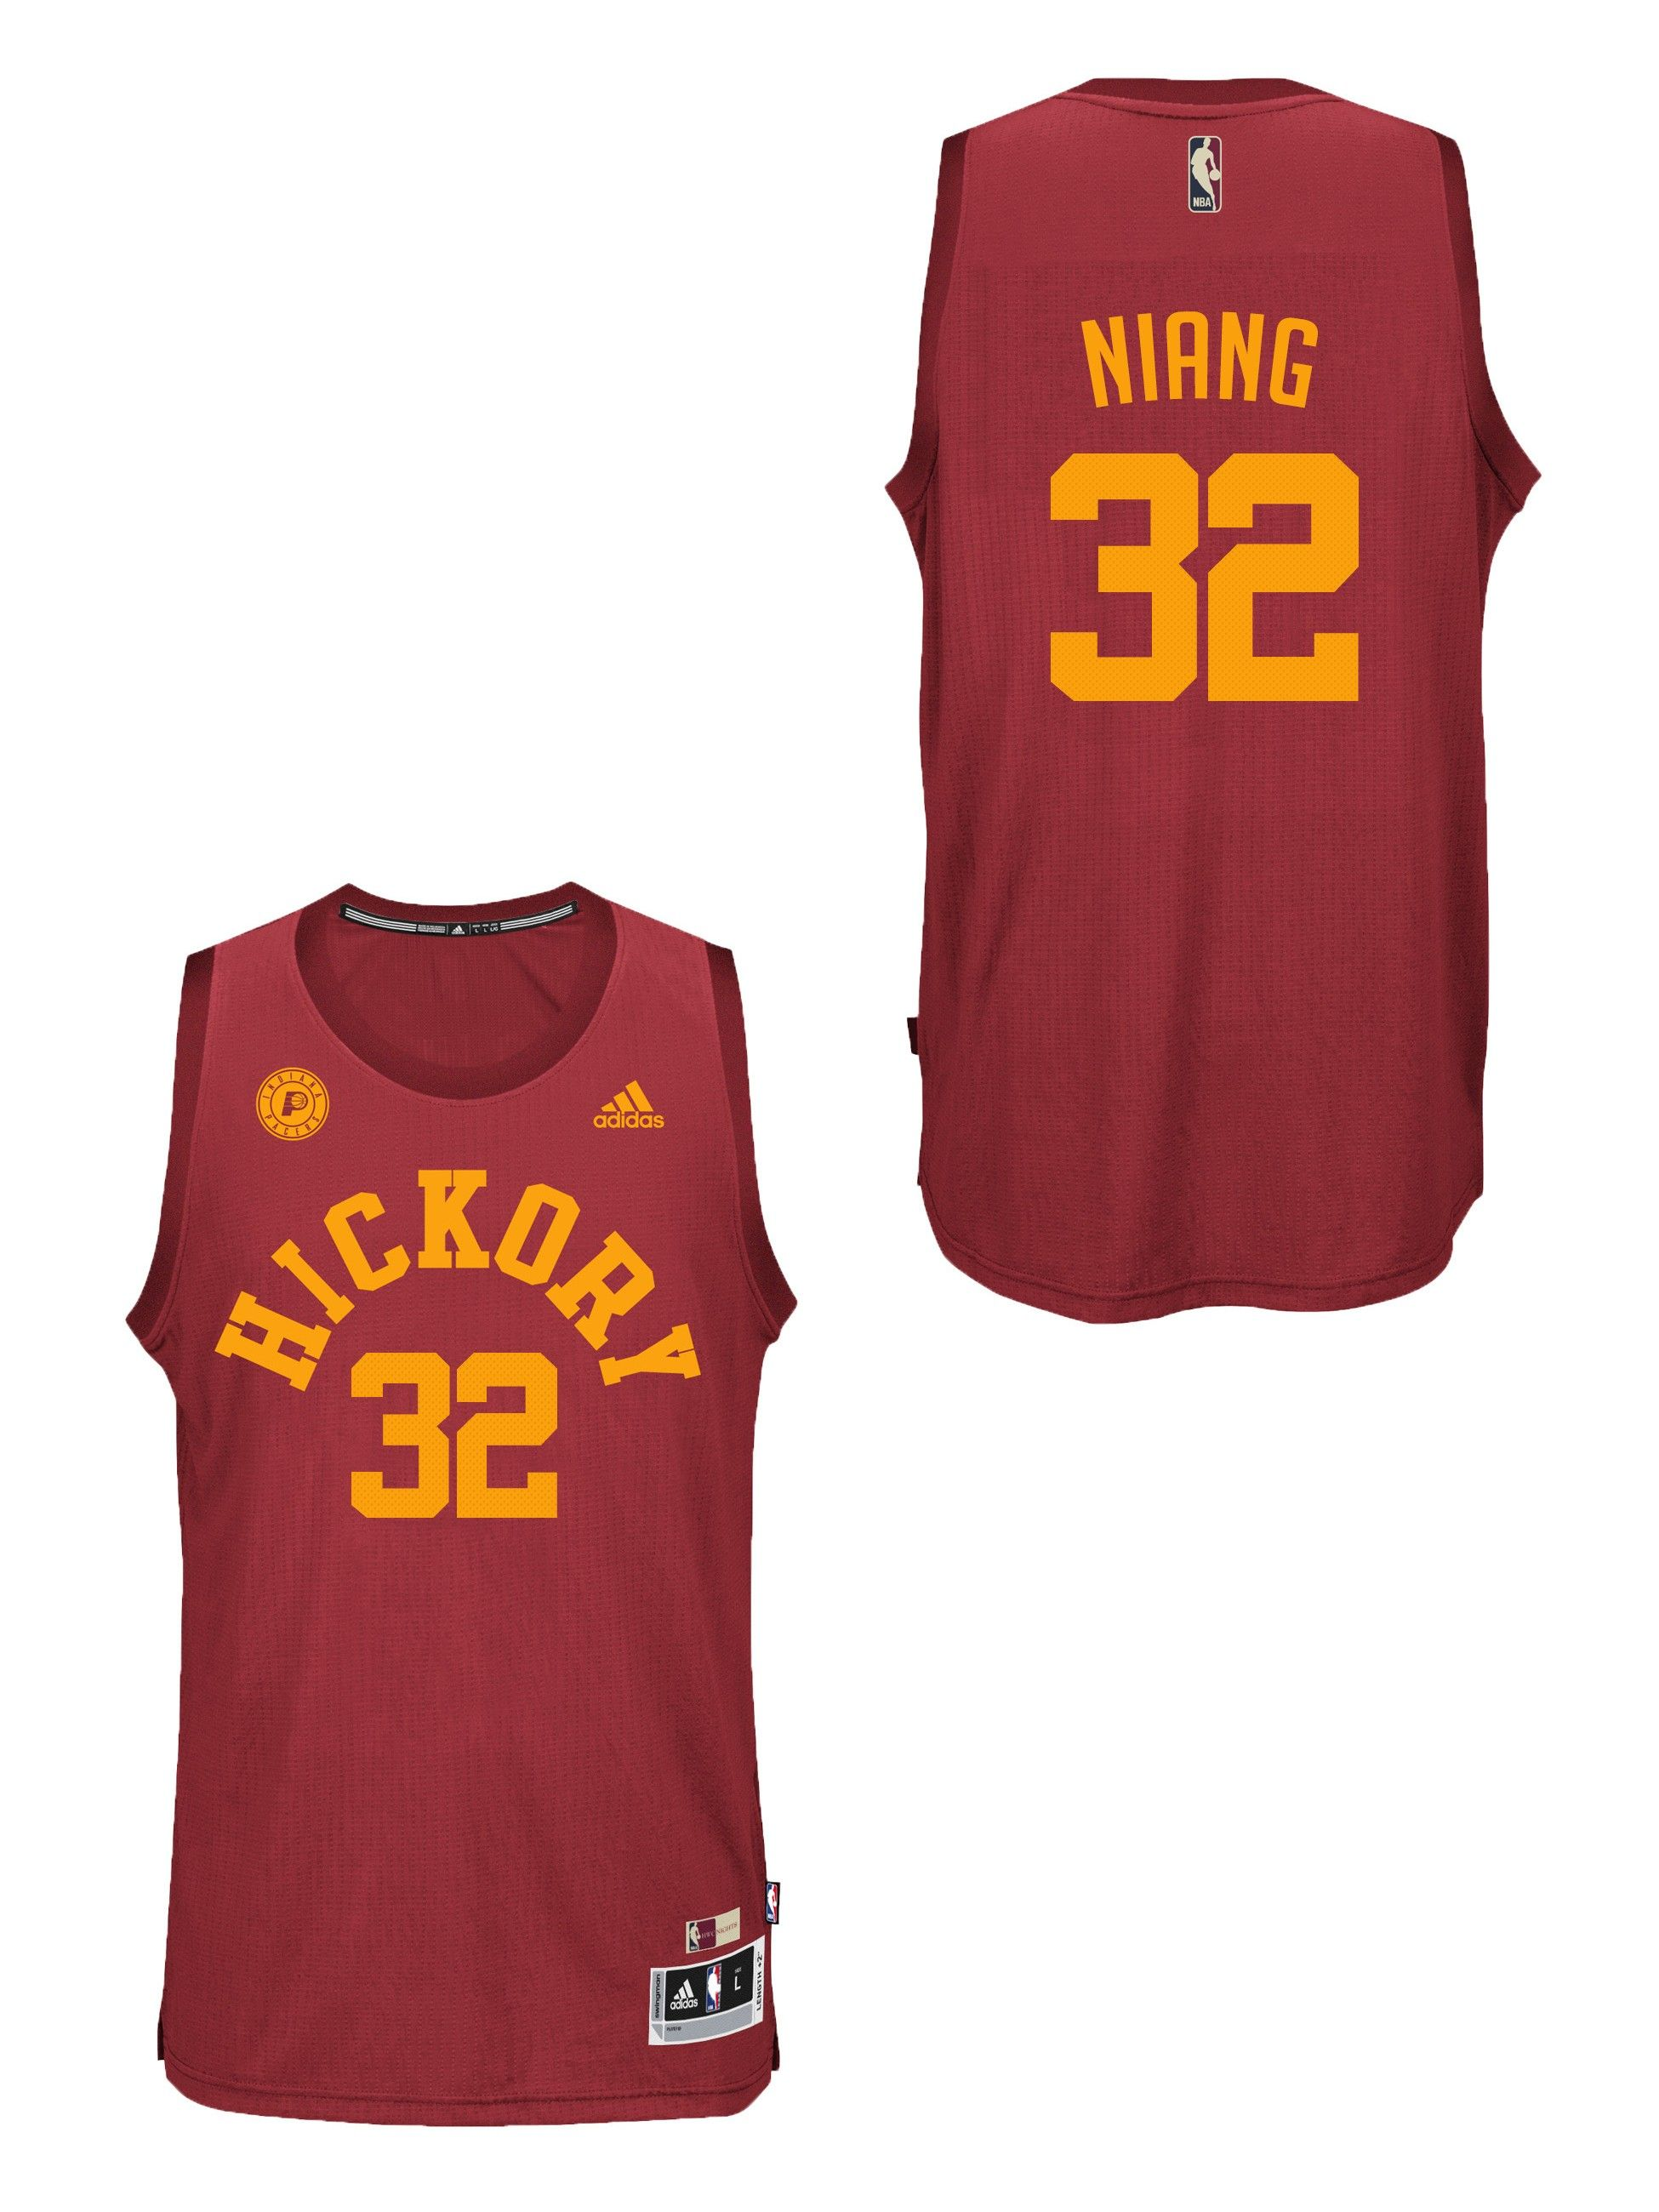 2105c6c17d2 Pacers Hickory  32 Niang Jersey